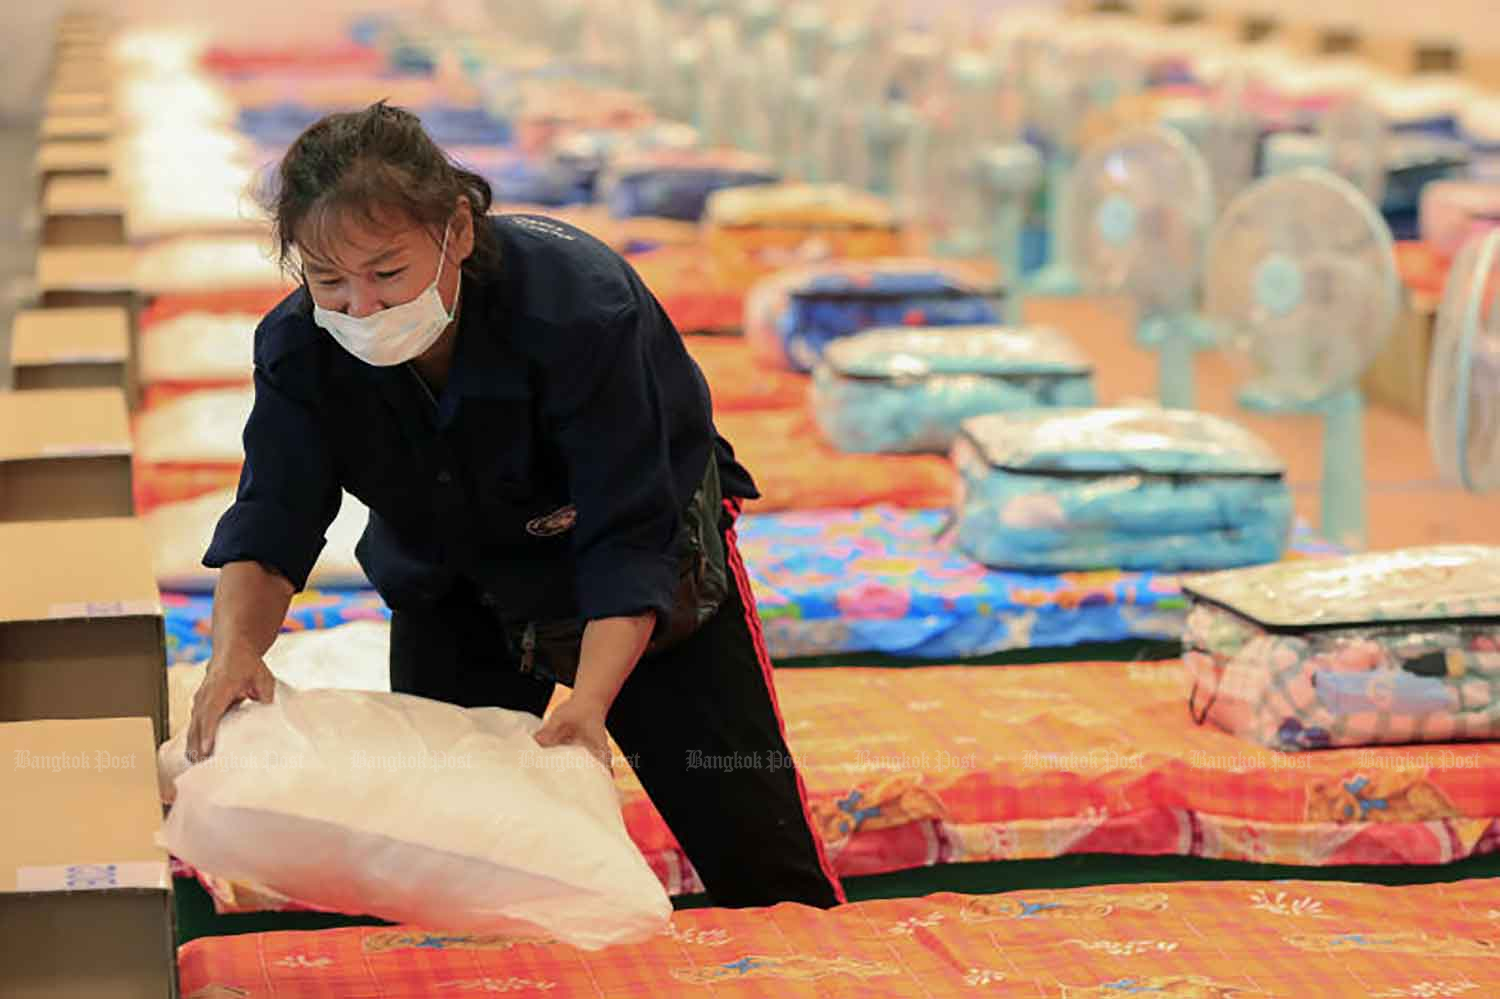 A worker prepares beds for a community isolation facility at the Tax Collection Training Institute building of the Revenue Department in Nonthaburi on Thursday. (Photo: Pornprom Satrabhaya)